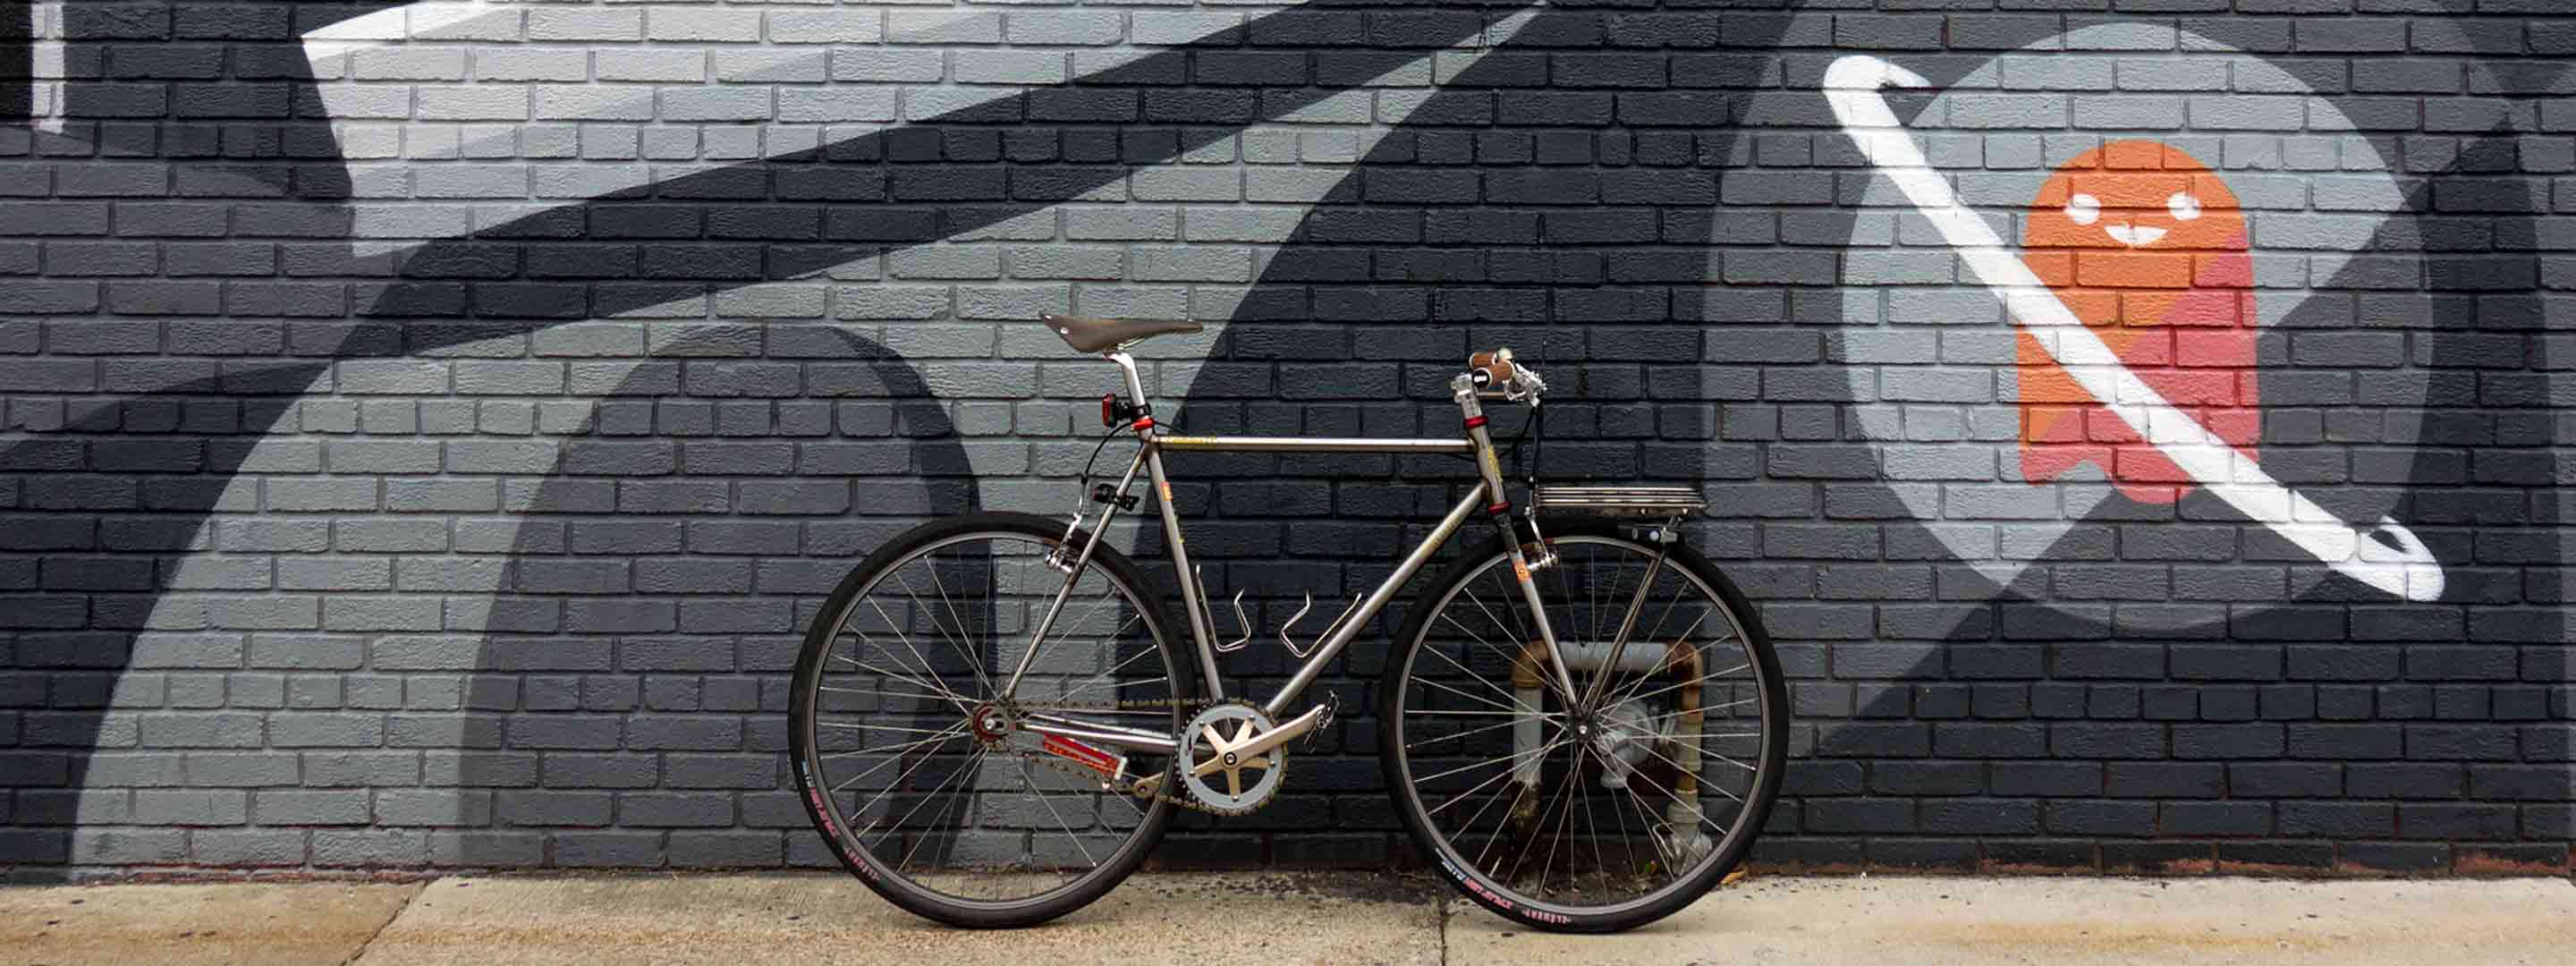 My Cinelli Mash Work Bike in front of a mural in RVA